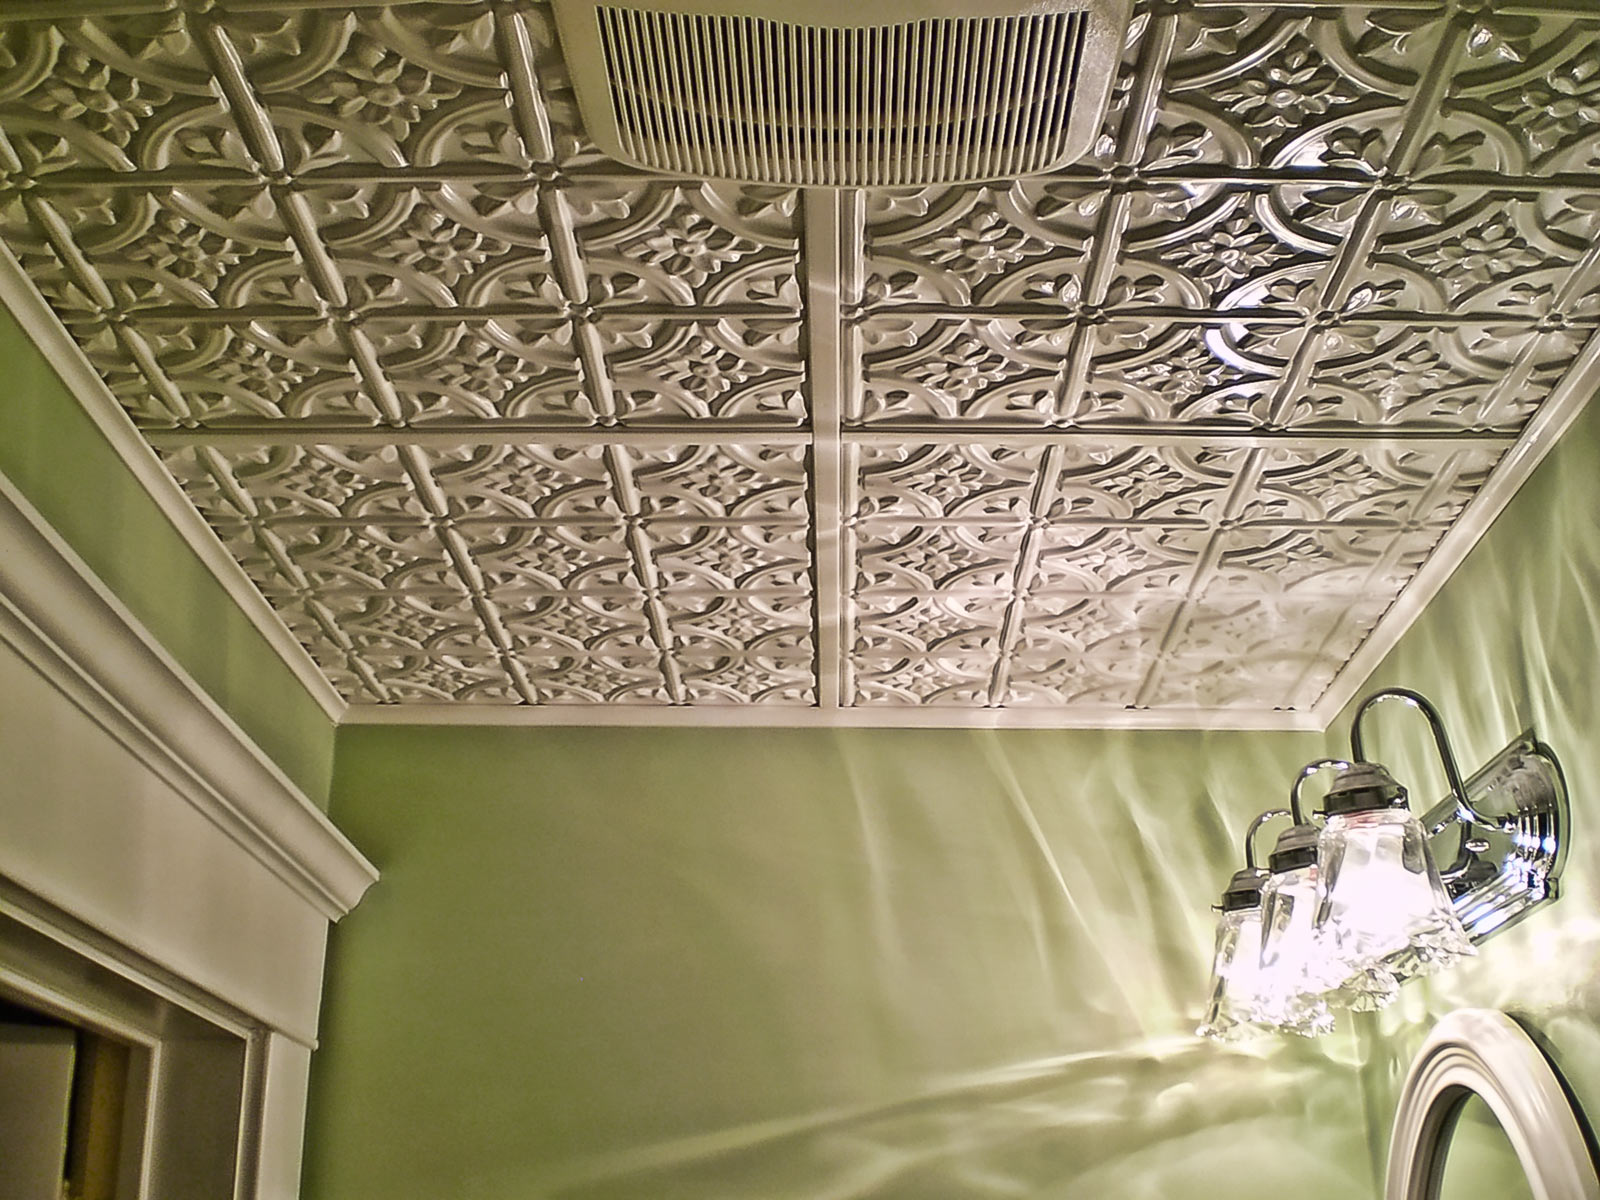 Decorative Bathroom Ceiling Tiles : Ct ceiling tile white